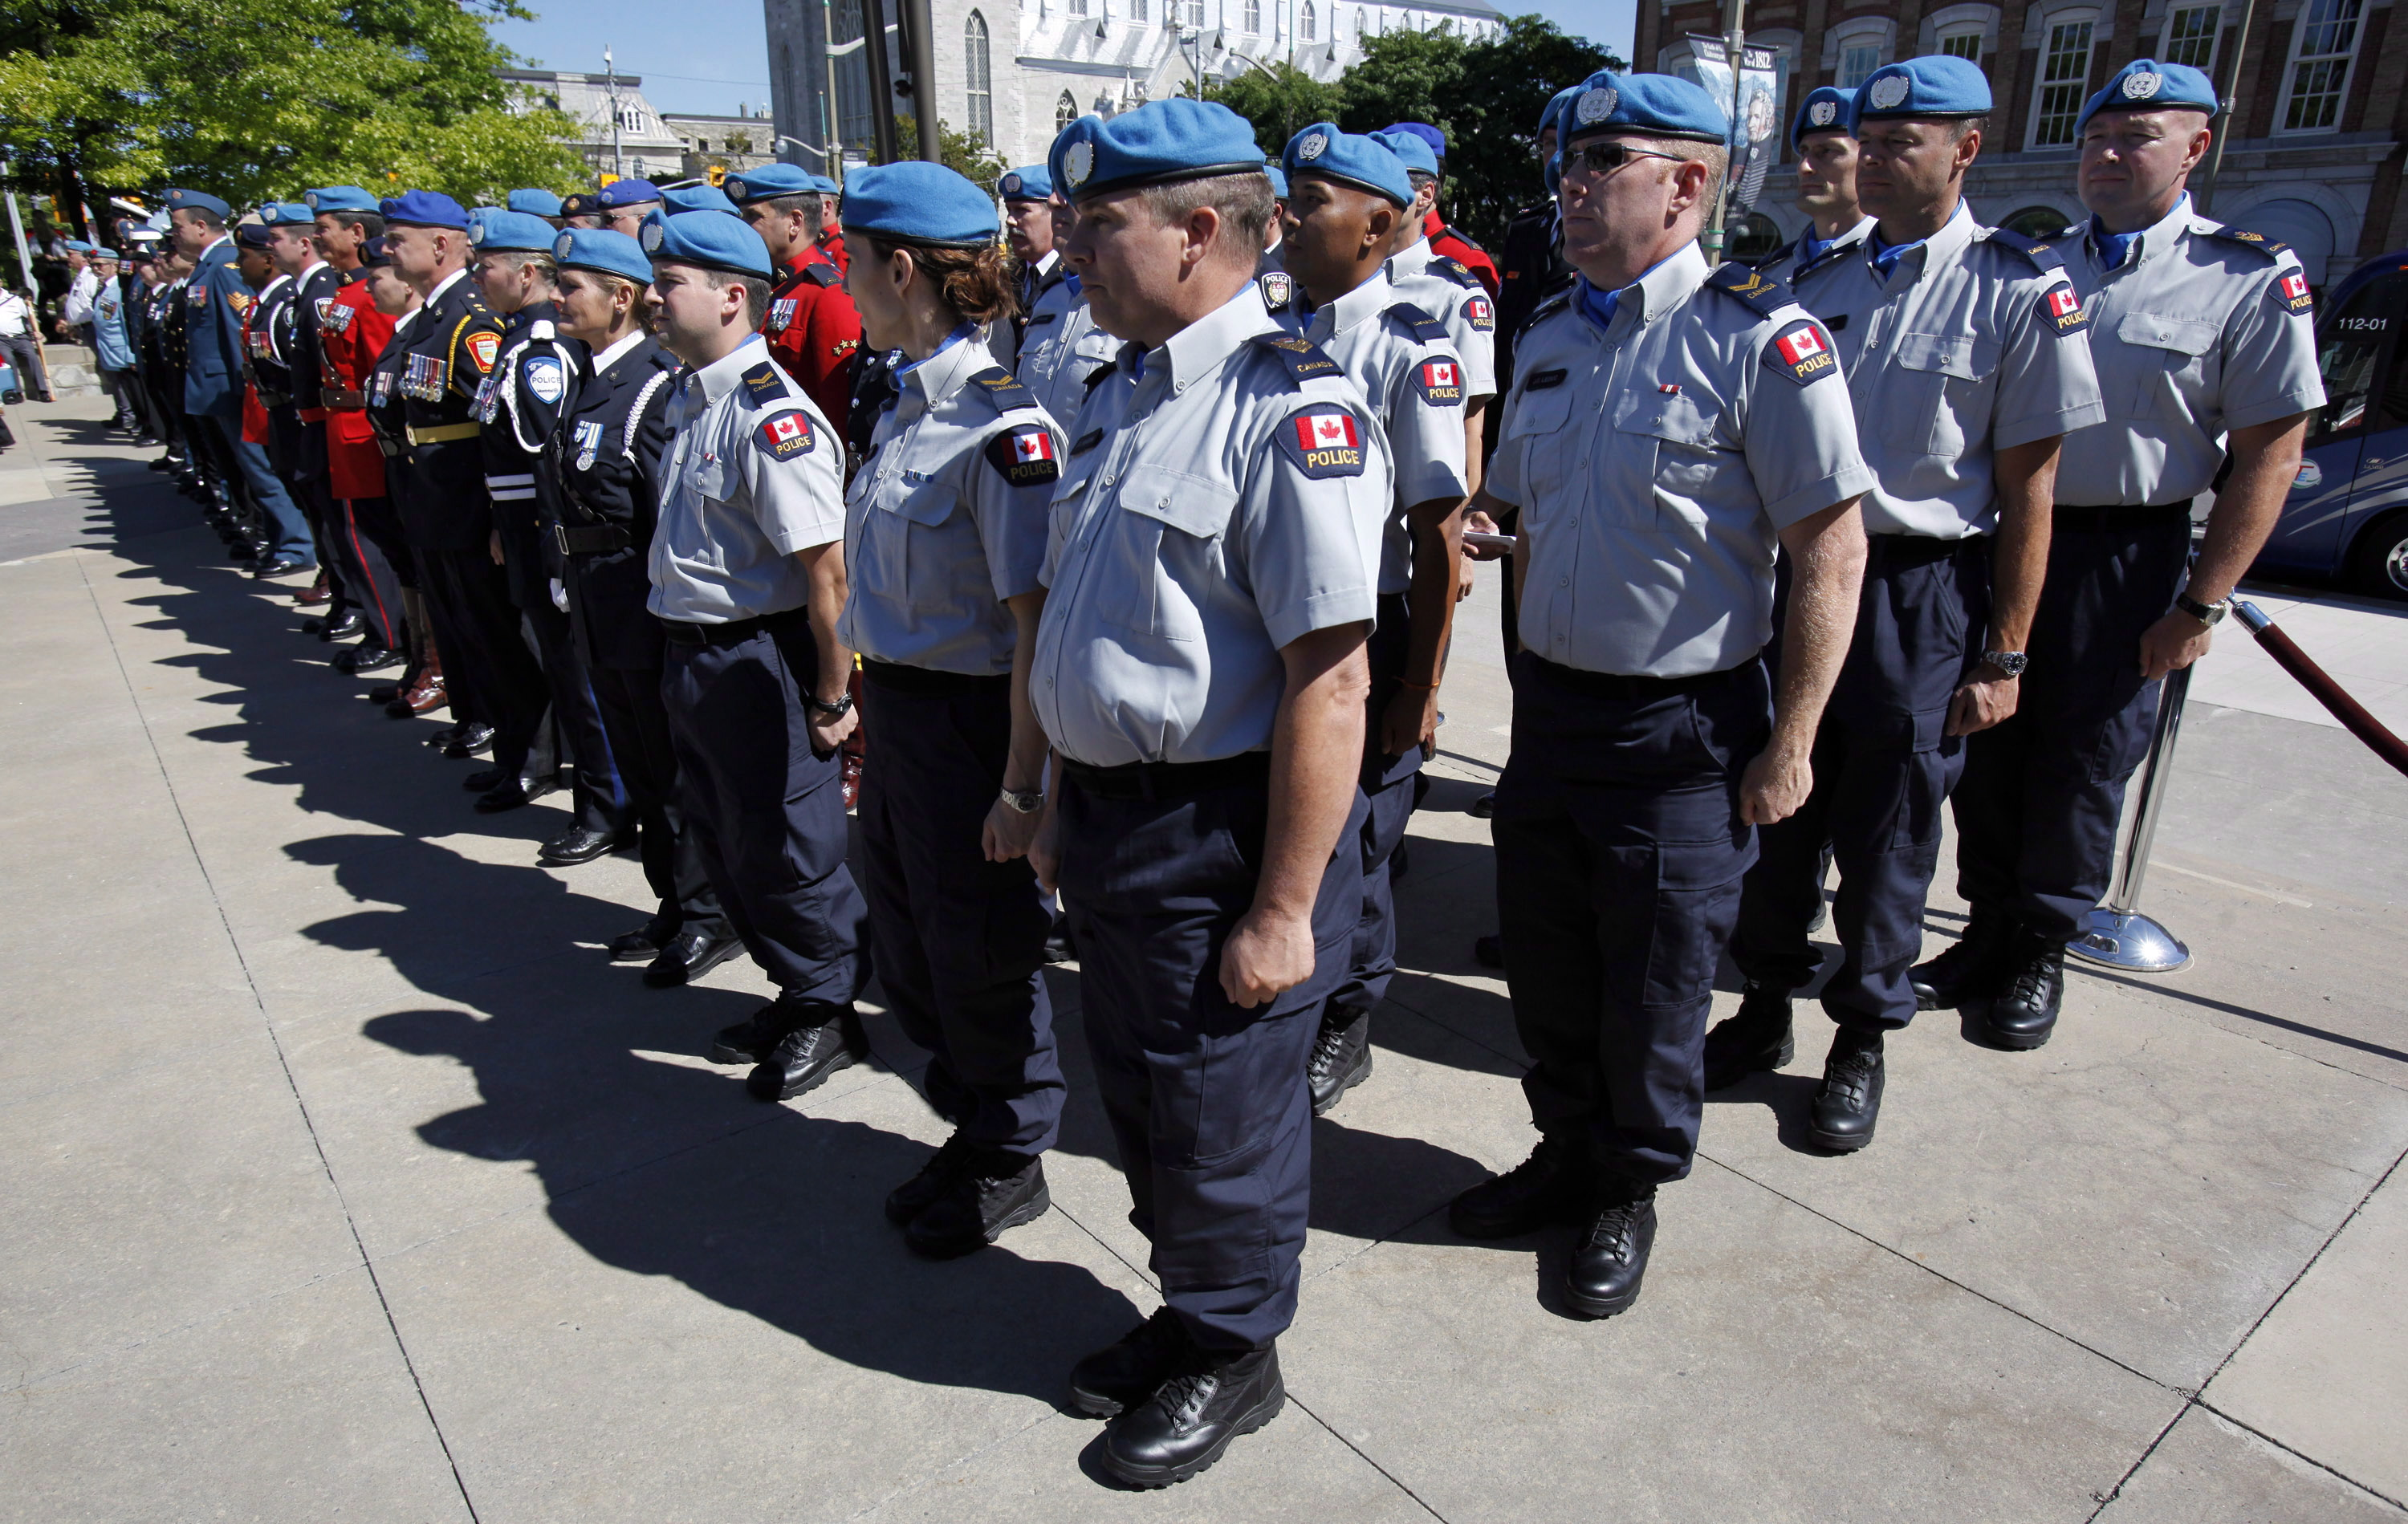 Canada may send peacekeepers to Colombia